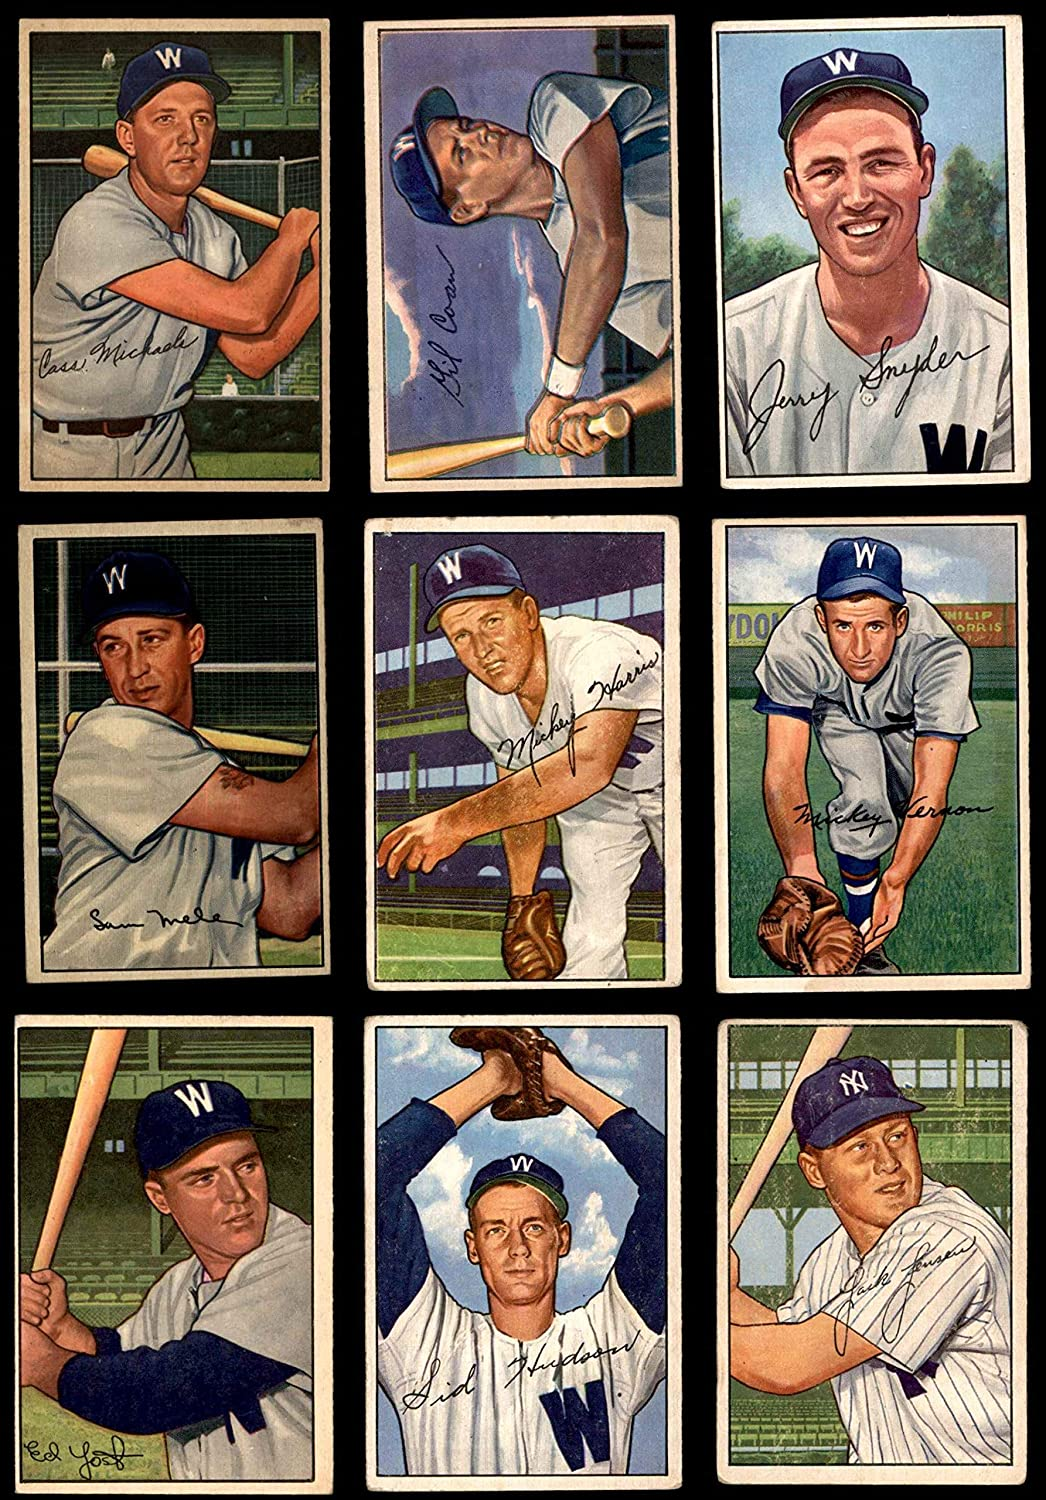 1952 Bowman Washington Senators Near Team Set Washington Senators (Baseball Set) Dean's Cards 3.5 - VG+ Senators